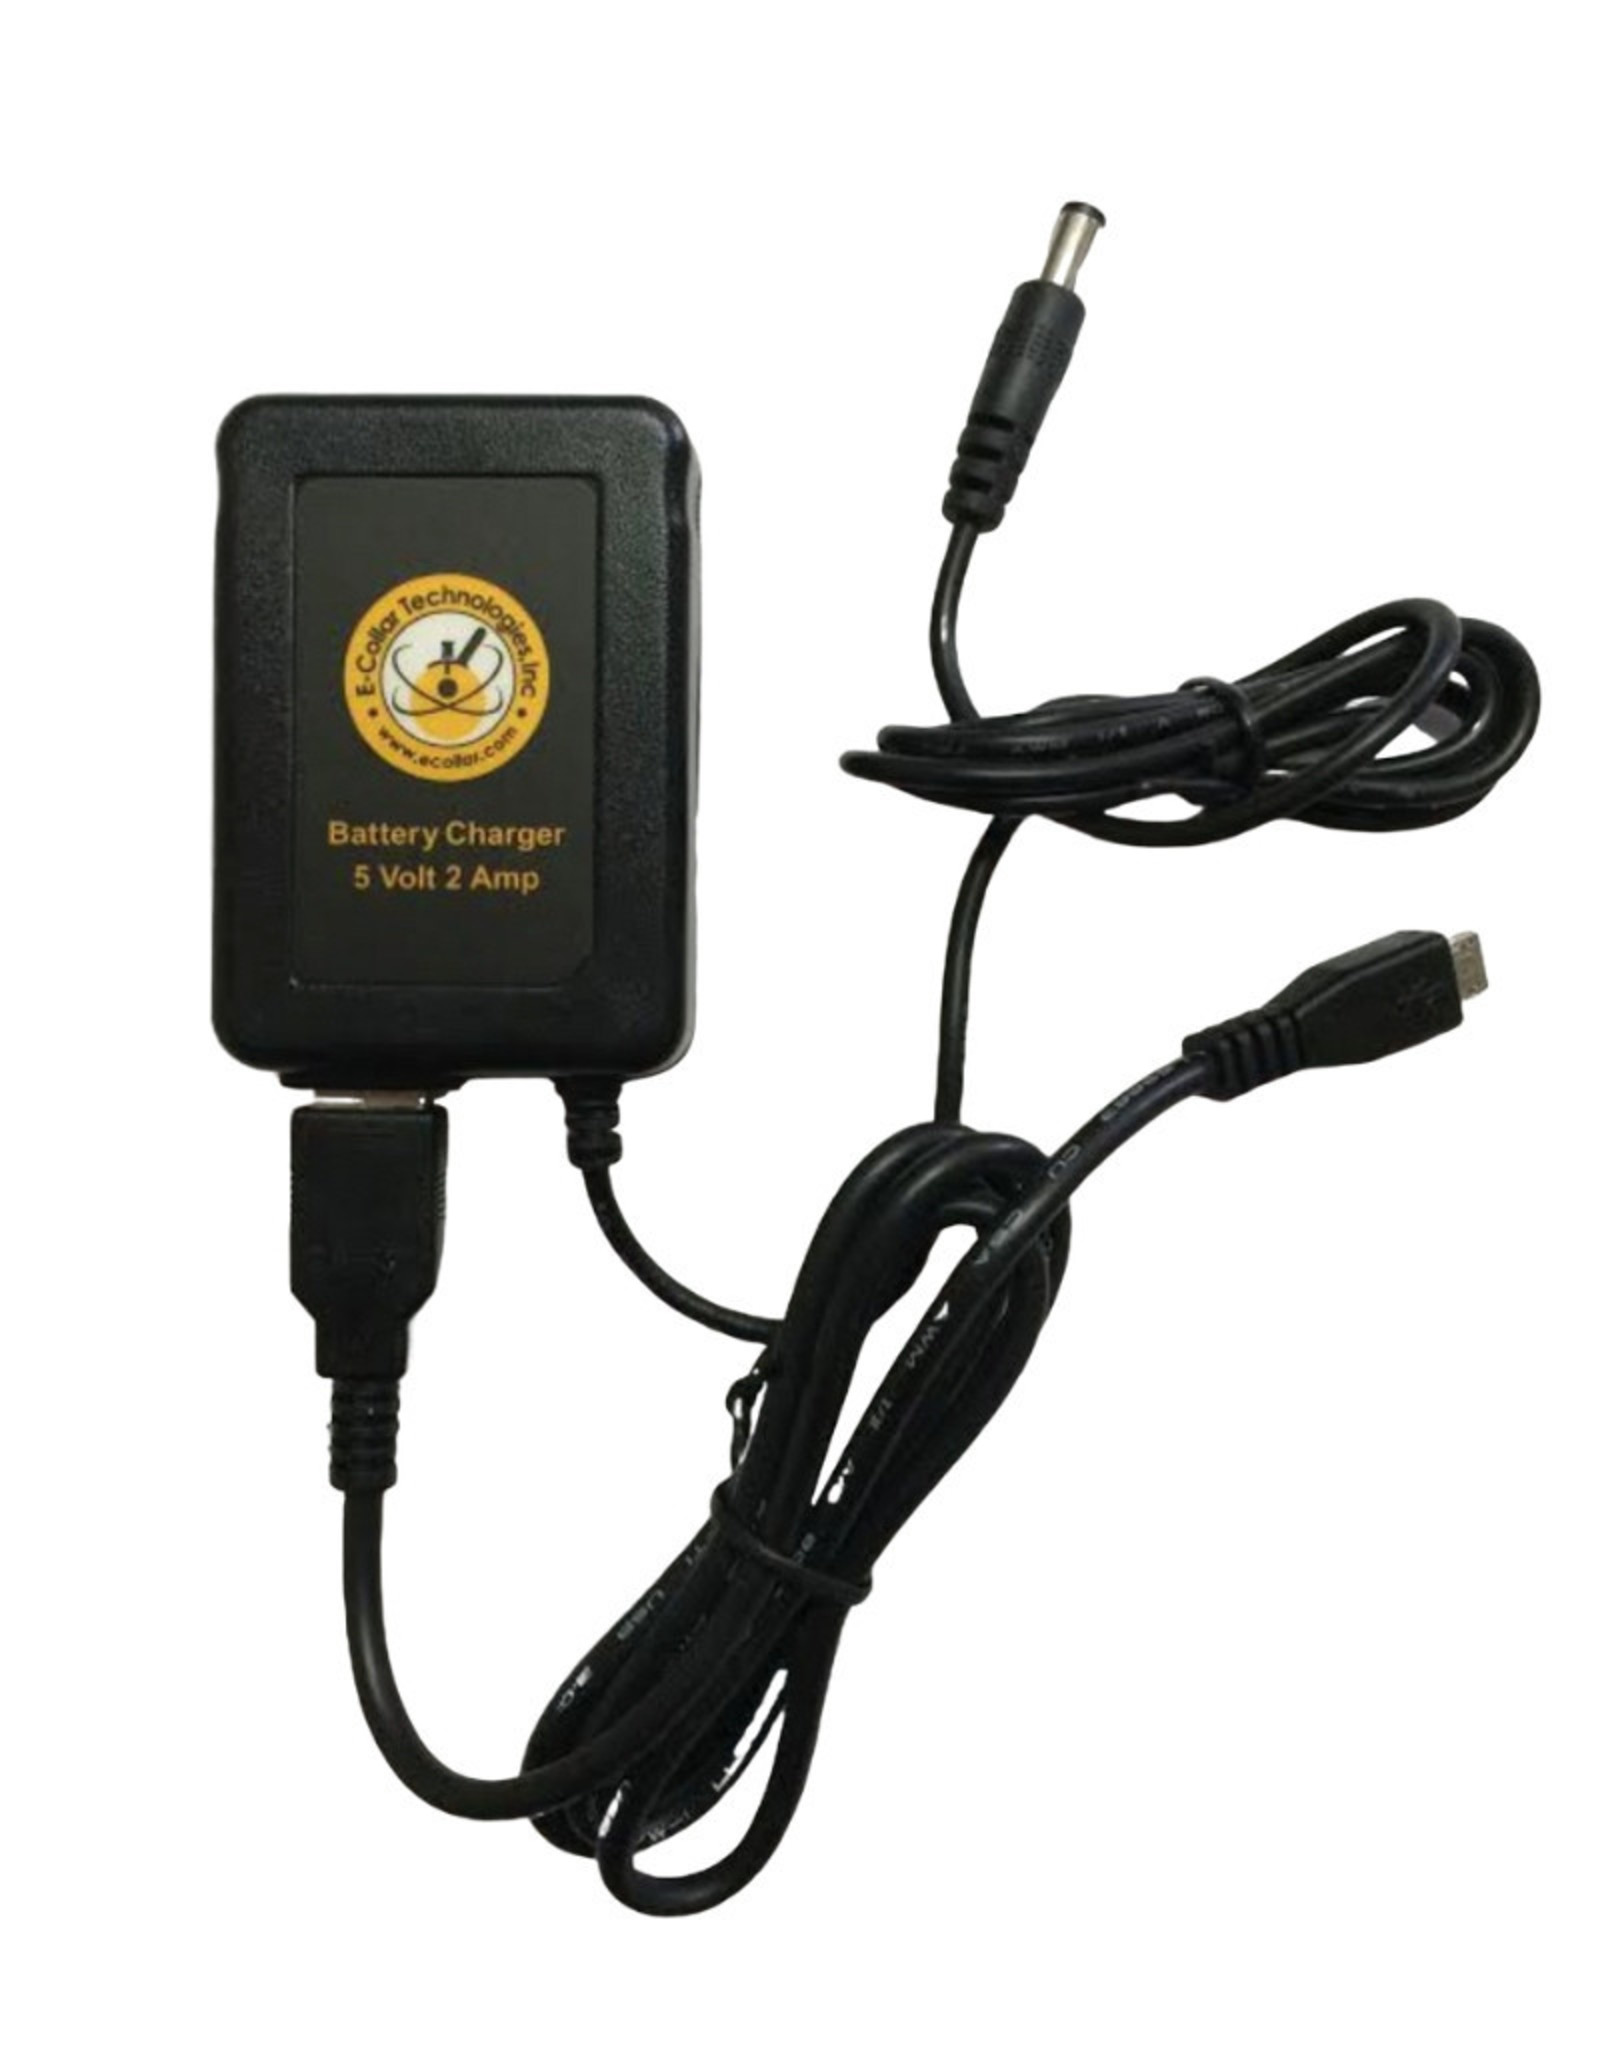 Pro and Easy 900 Series Chargers (5V 2A)